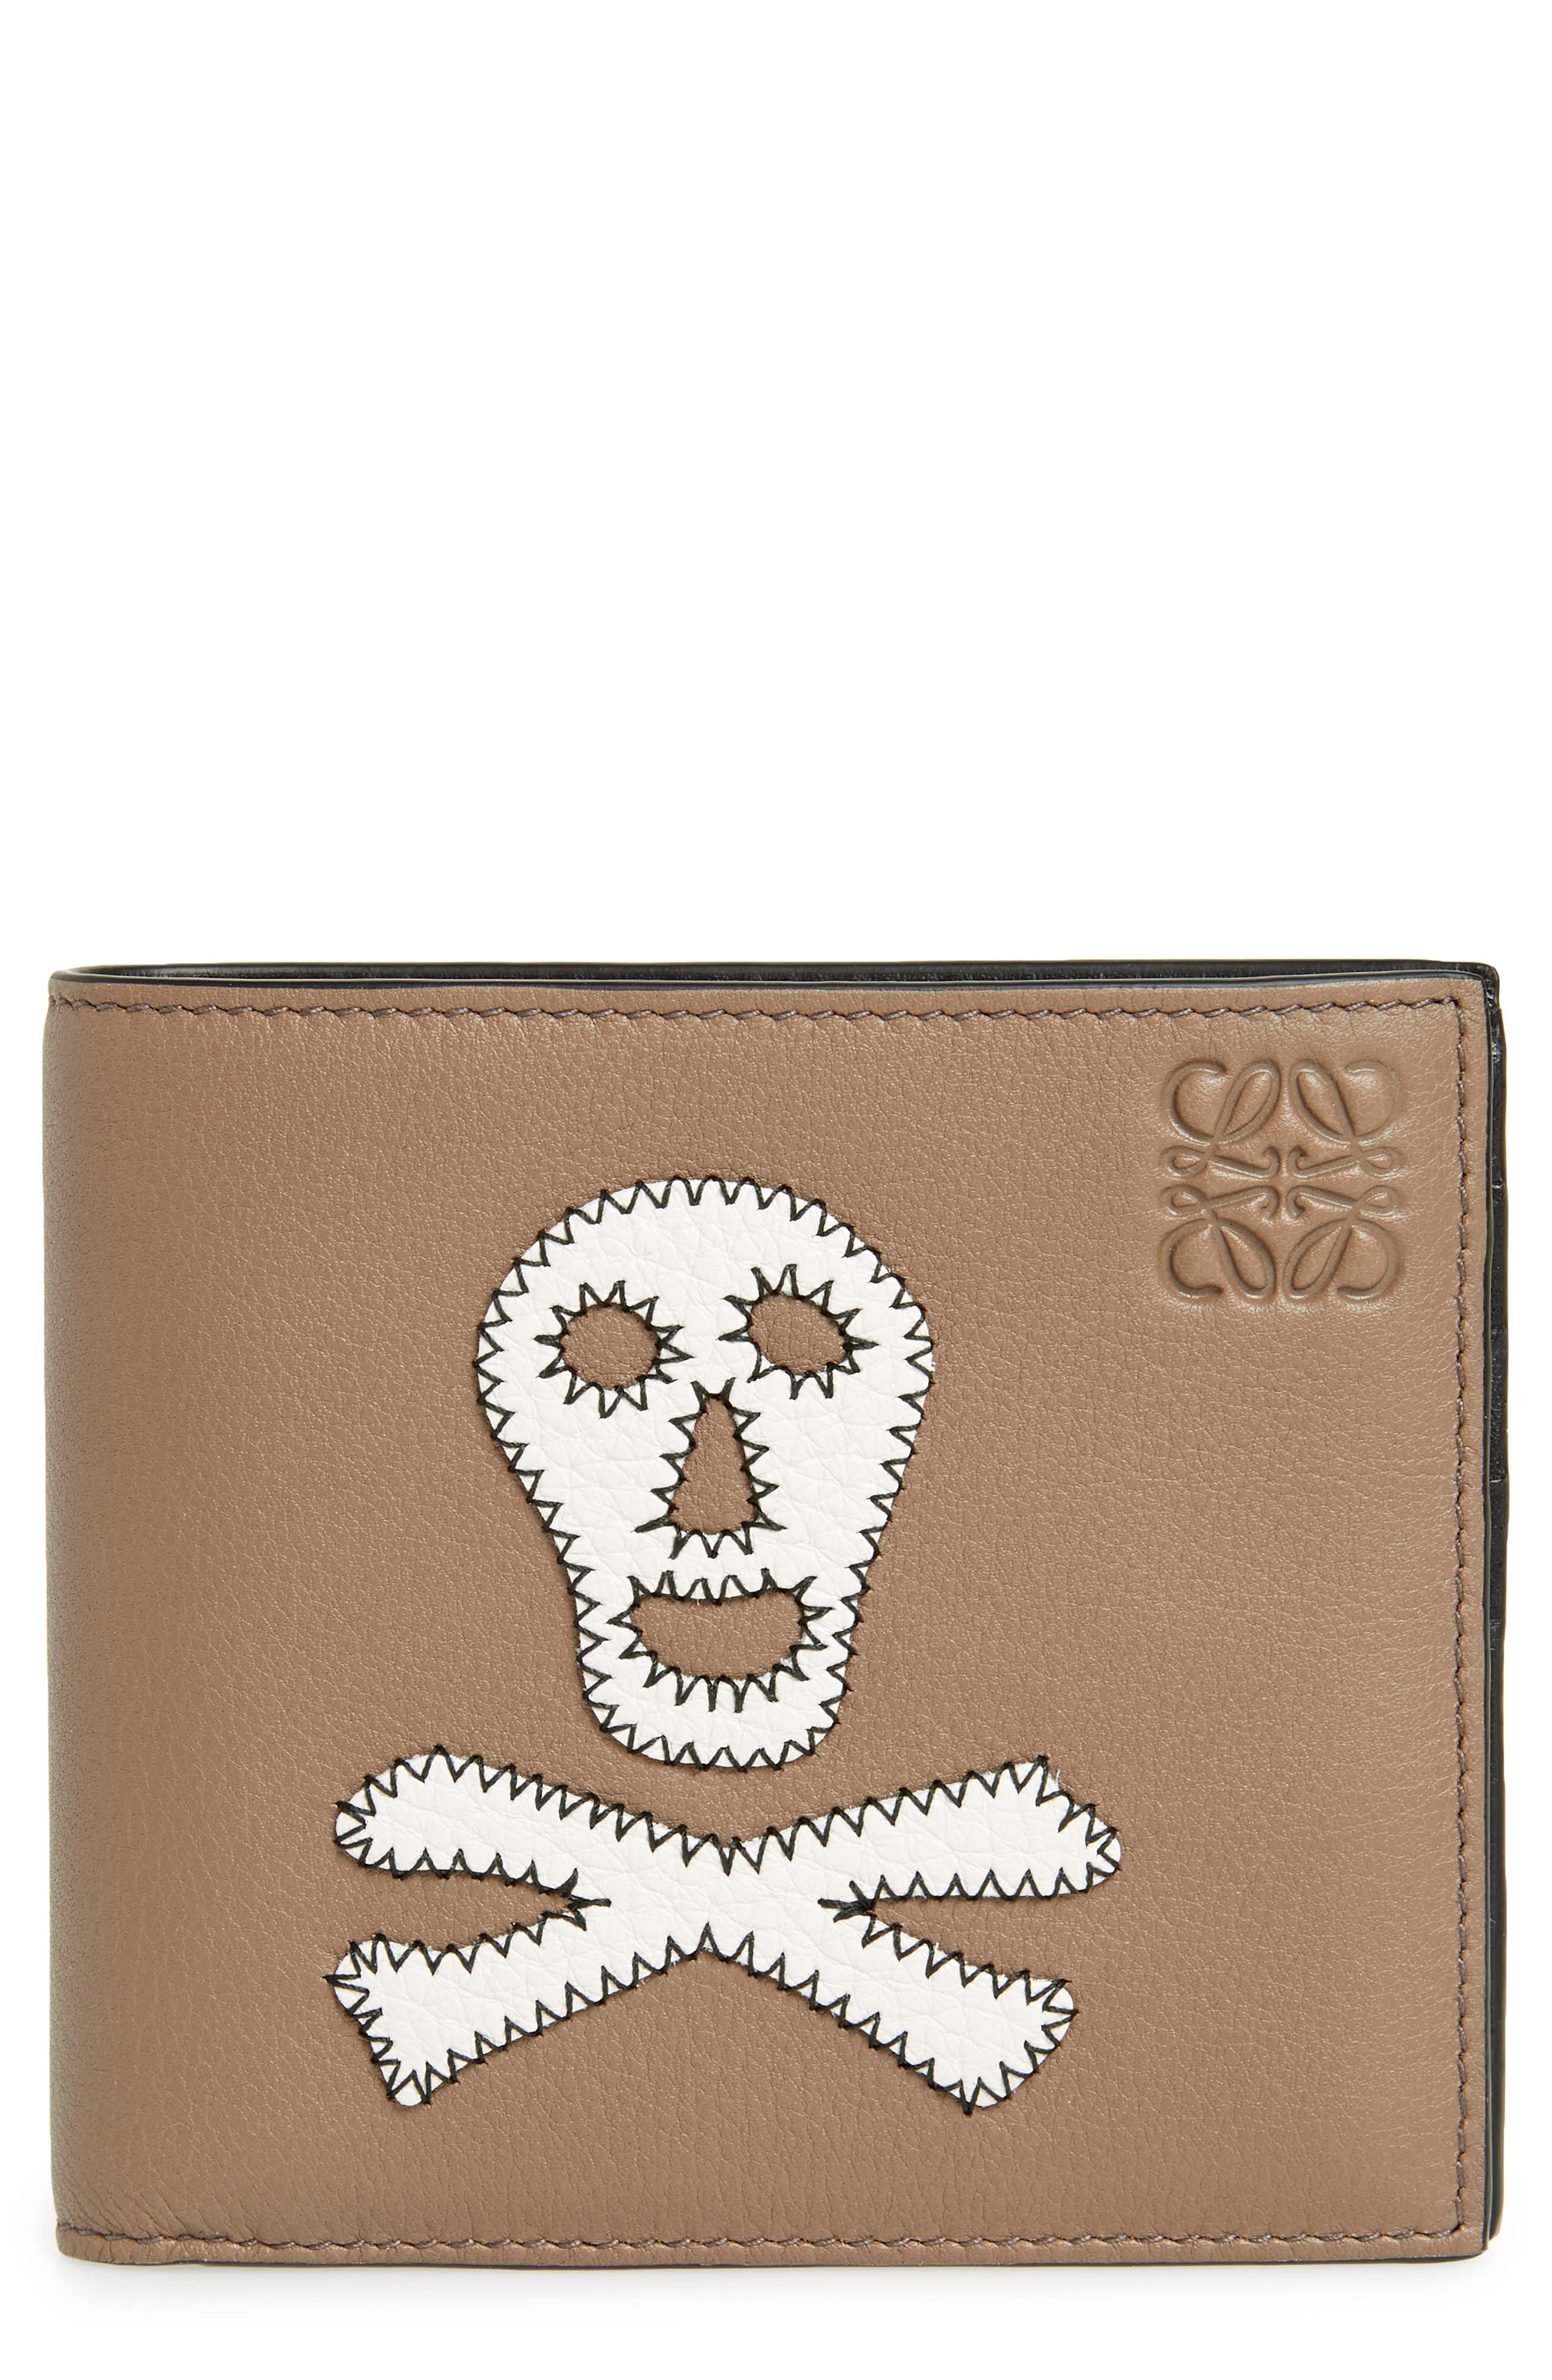 Skull Leather Bifold Wallet,                             Main thumbnail 1, color,                             Dark Taupe/ Tan/ White